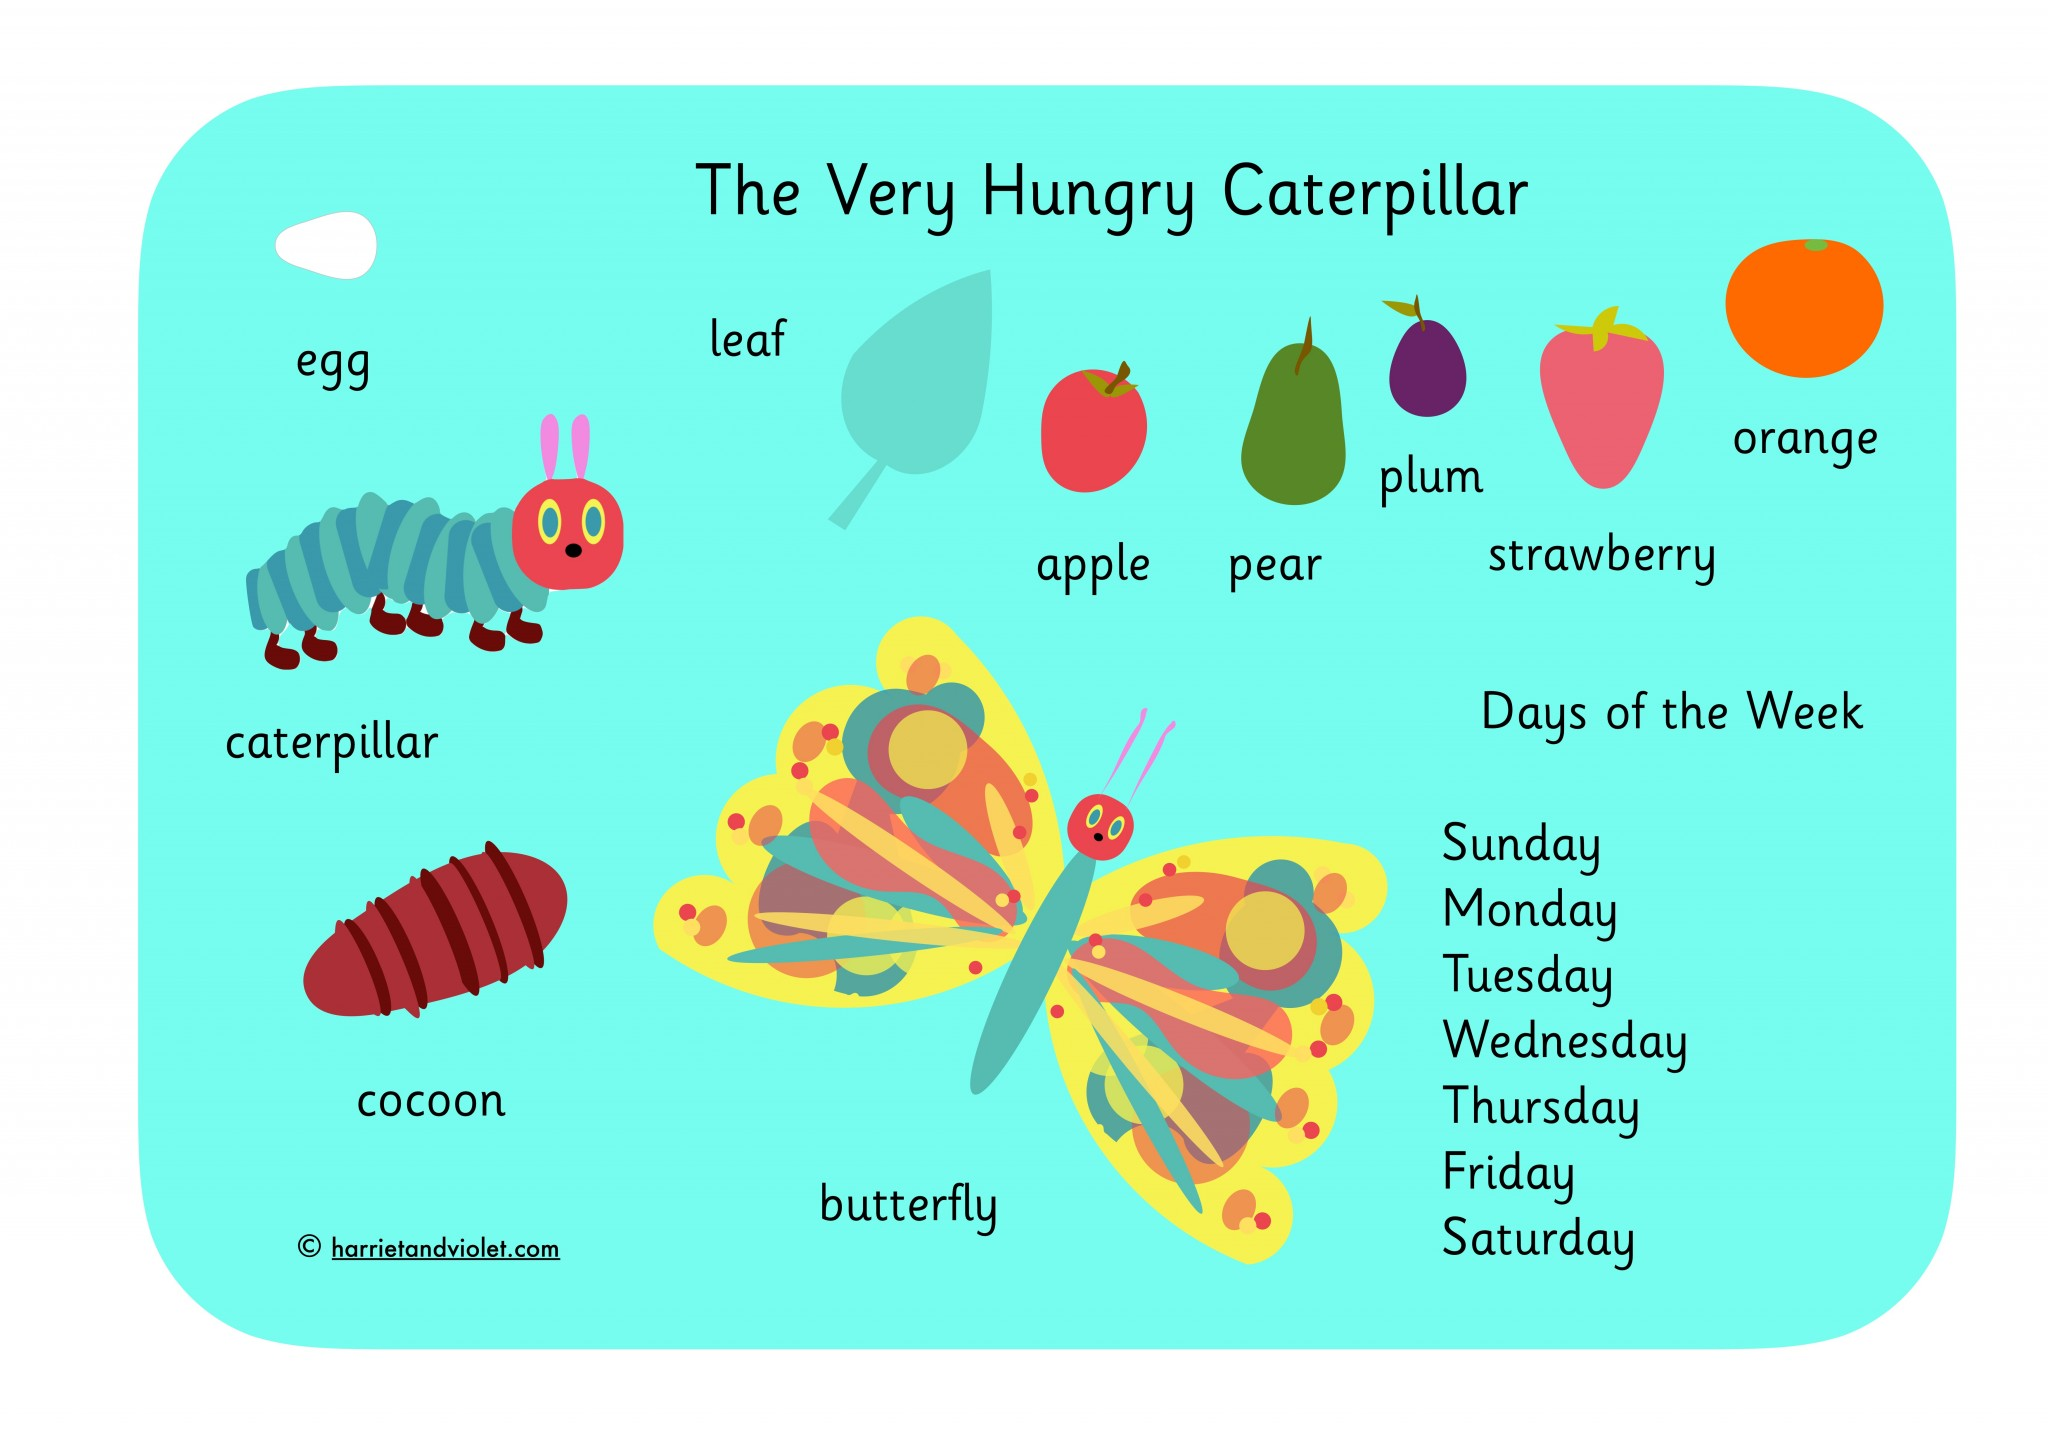 the very hungry caterpillar pdf free download